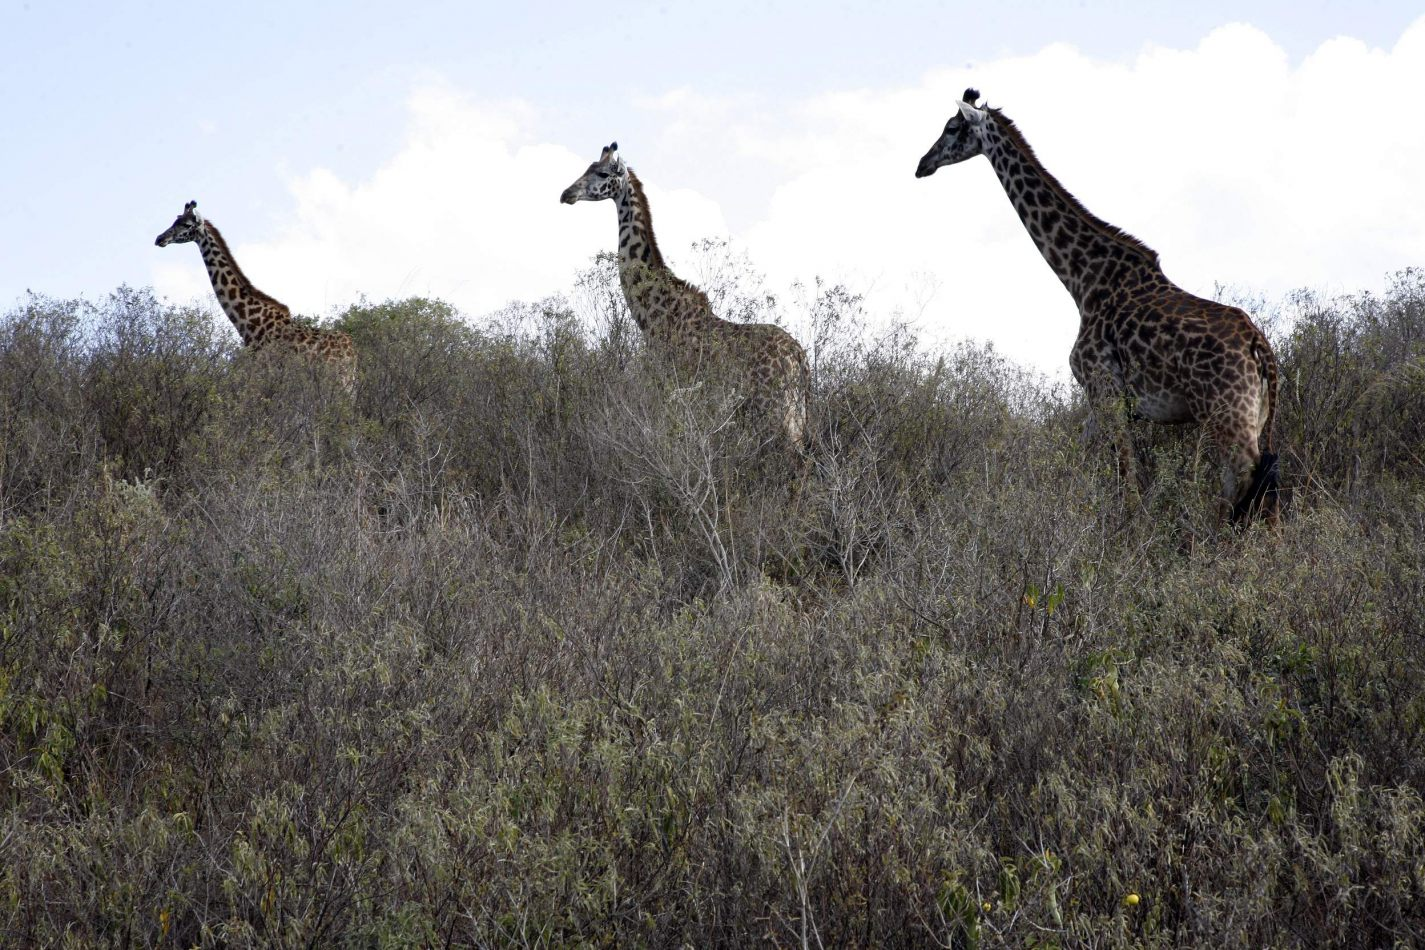 Anthony Ellis Photography: Mzungu - Three Giraffes